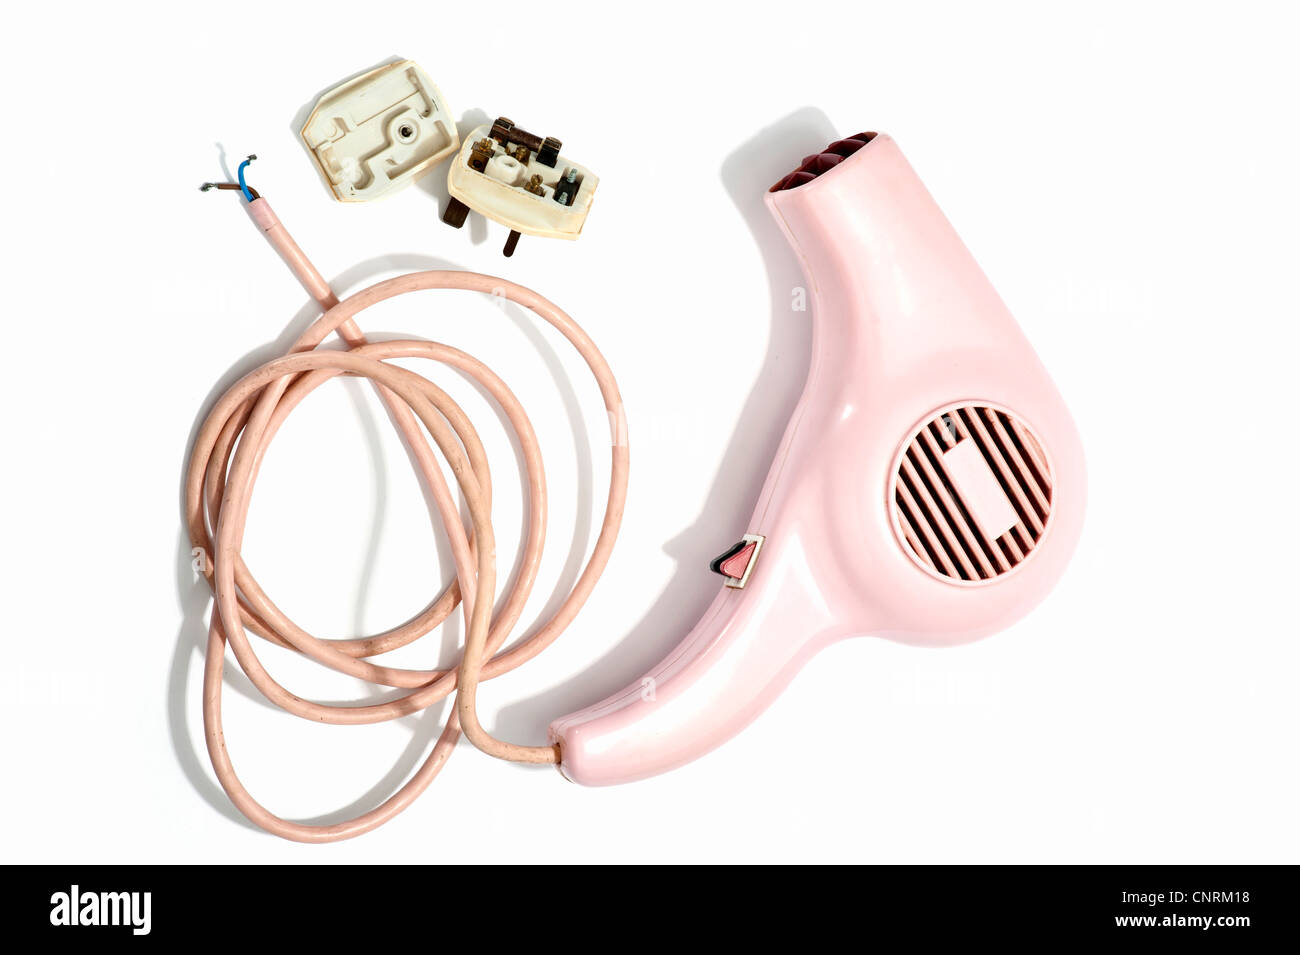 A pink hairdryer with the plug taken apart - Stock Image